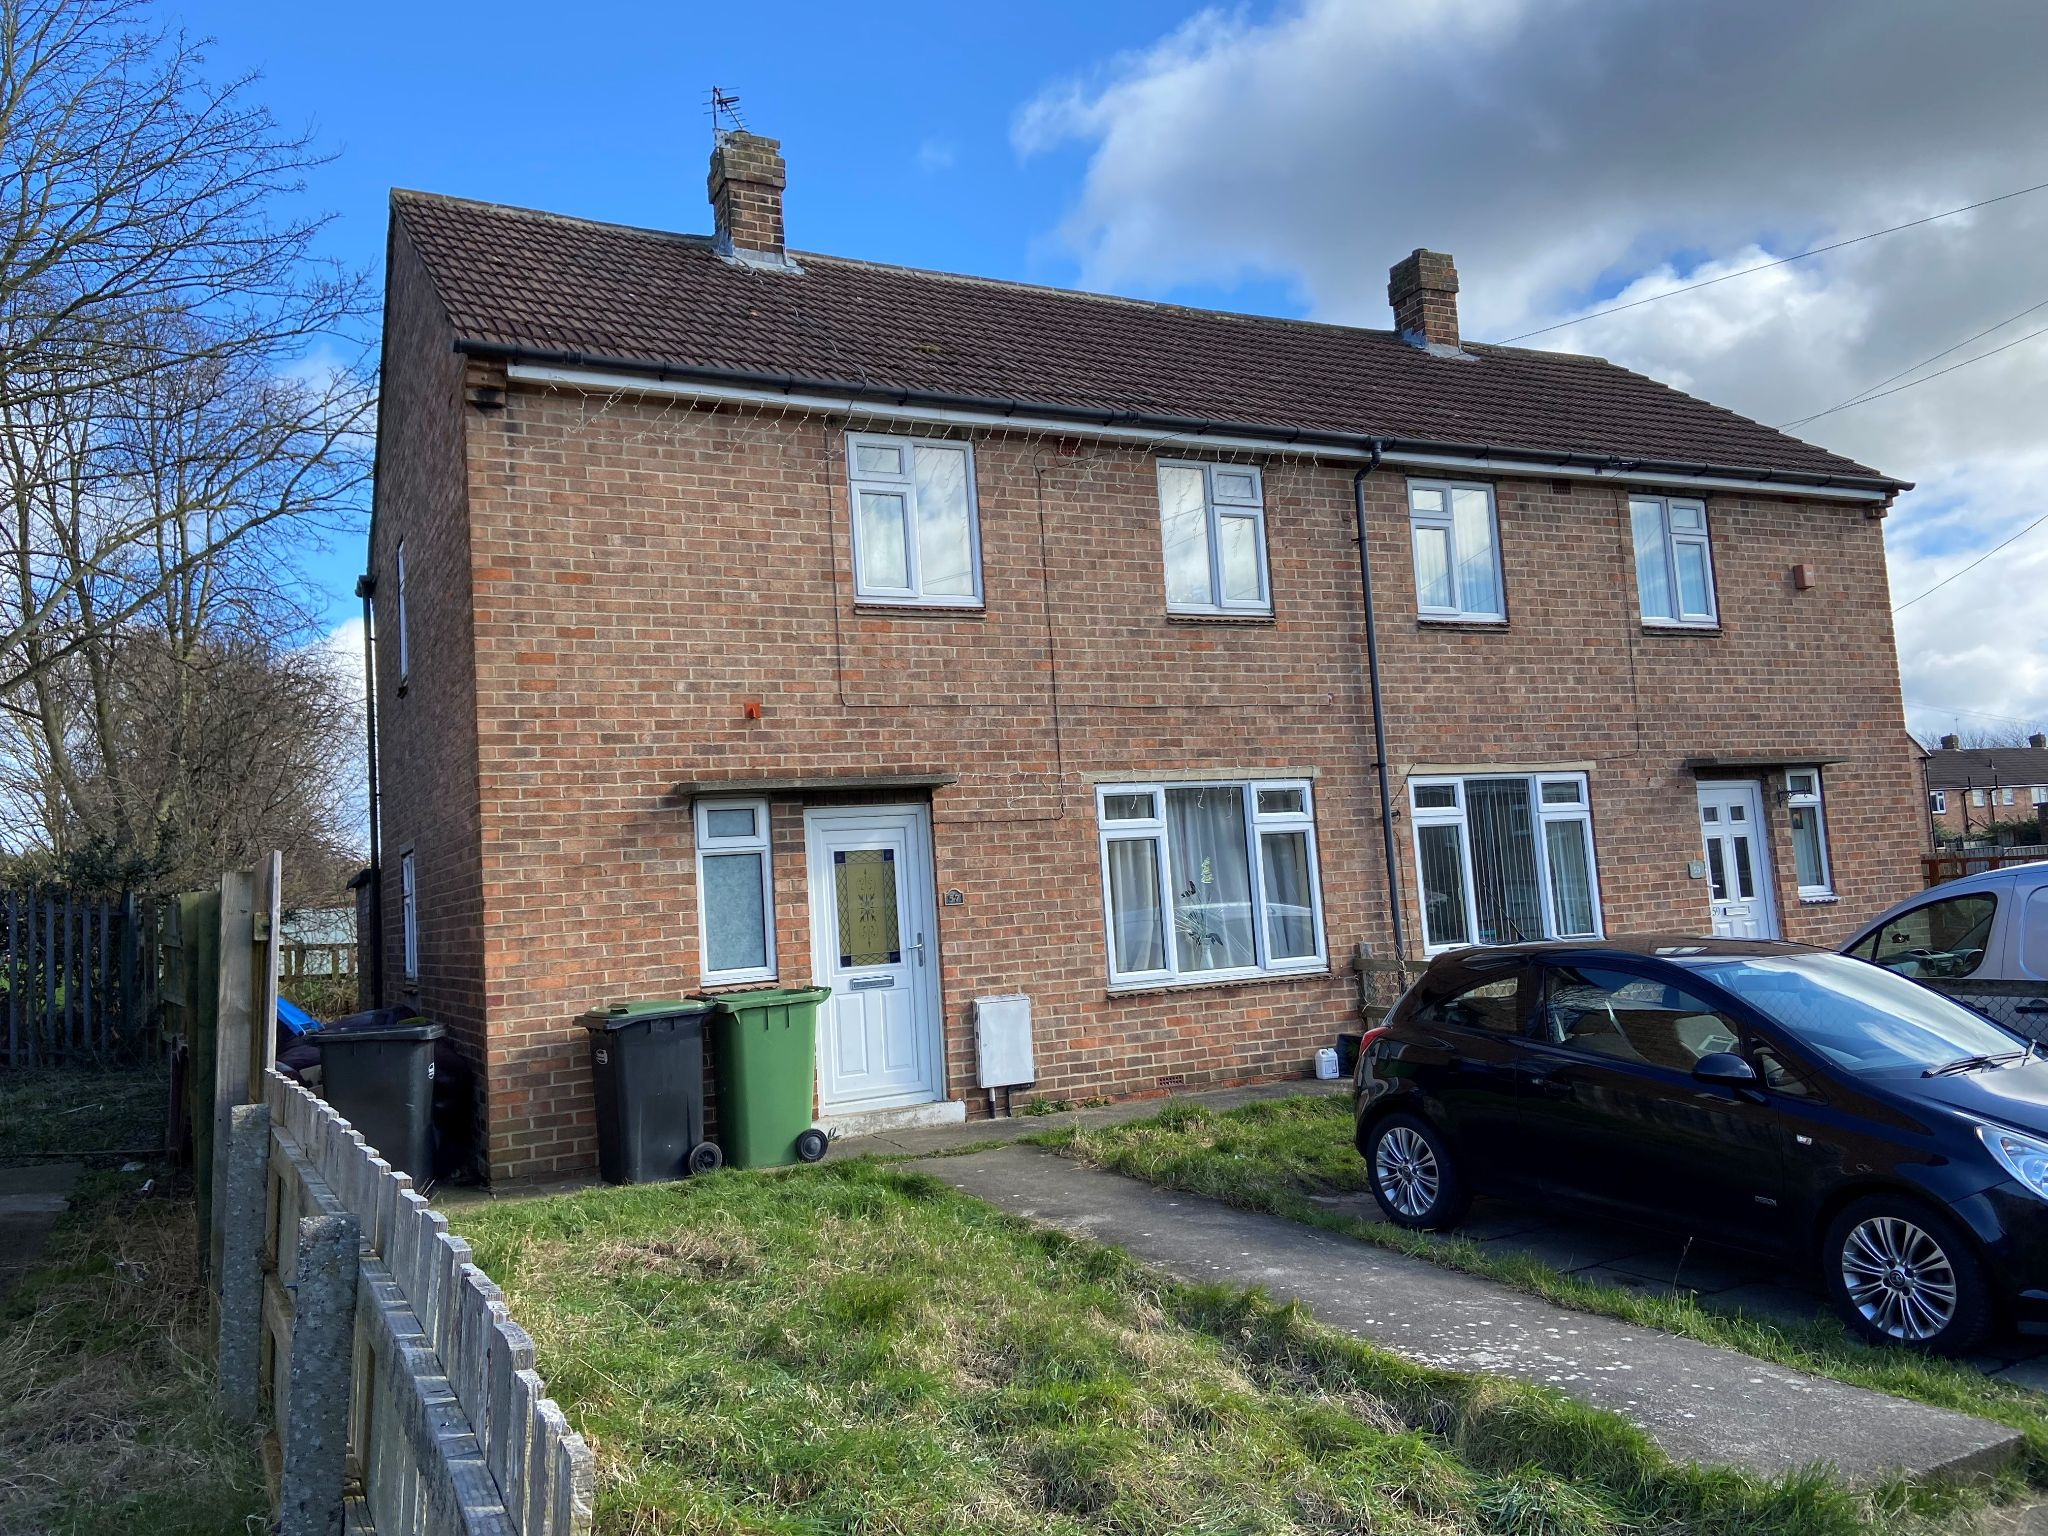 2 bedroom semi-detached house For Sale in Shildon - Photograph 1.